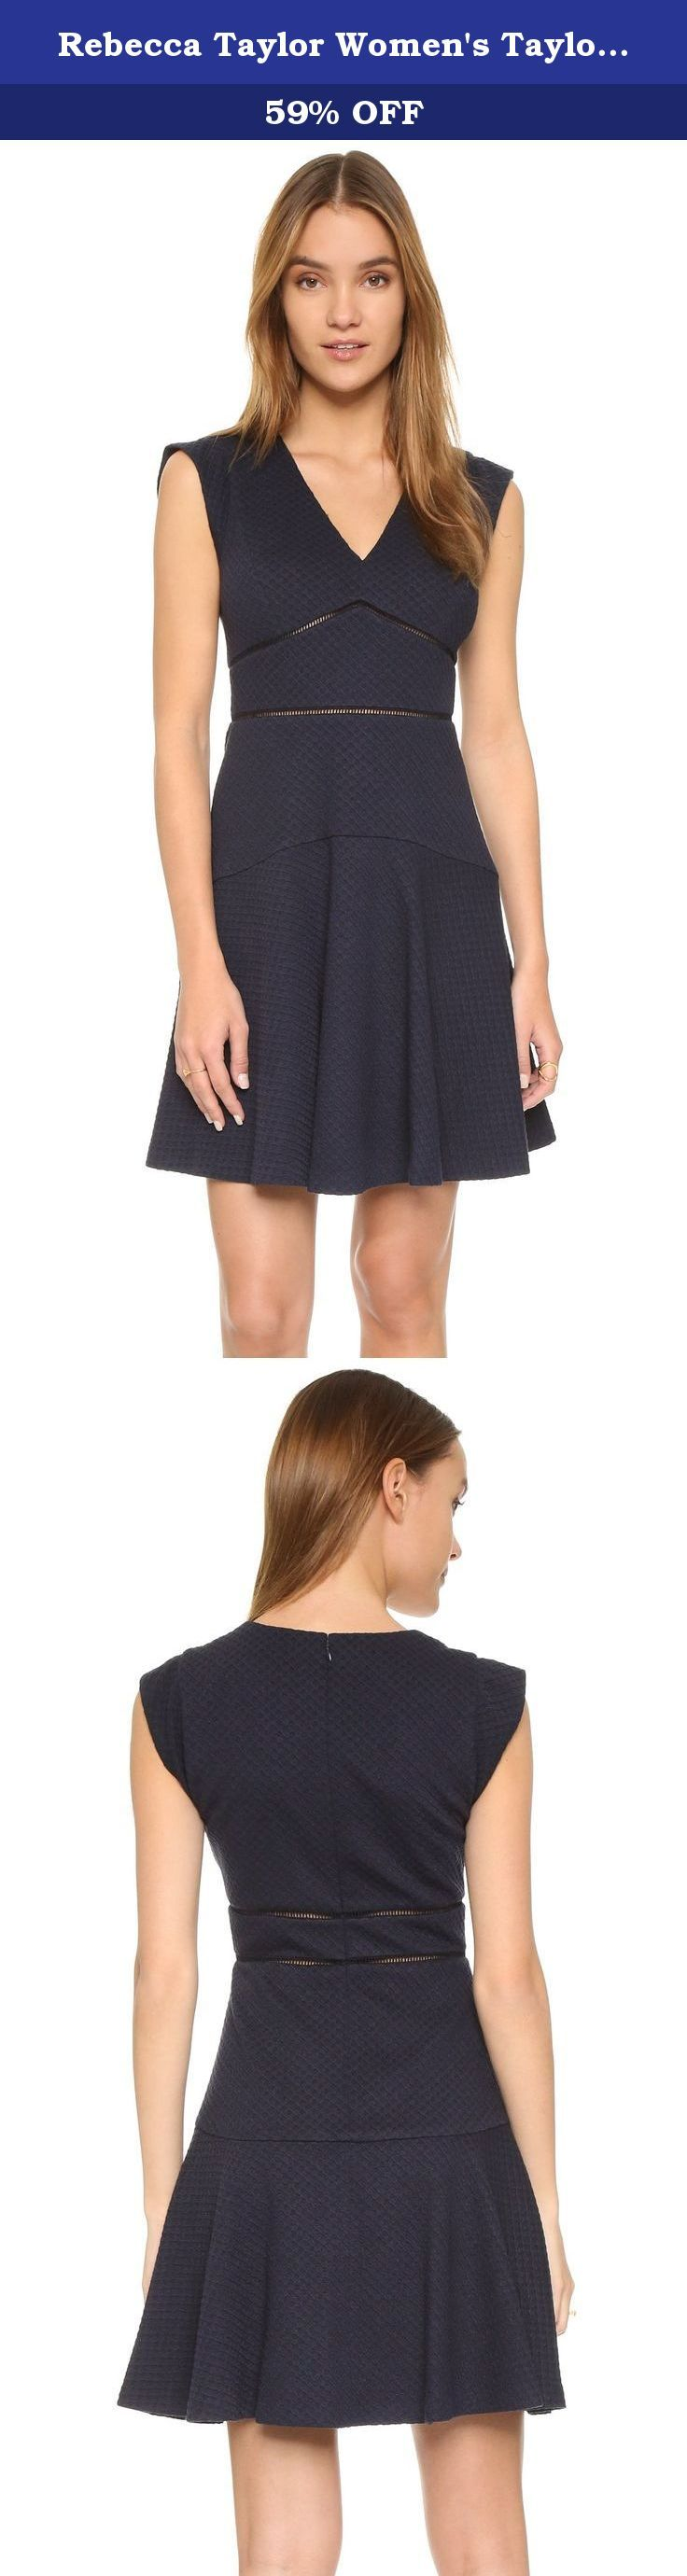 Rebecca Taylor Women's Taylor Dress, Navy, 4. Honeycomb texture lends visual depth to this knit Rebecca Taylor dress. Ladder stitches define the inverted basque waist, and a seamed panel smooths the flounced skirt over the hips. Deep V neckline. Cap sleeves. Lined.